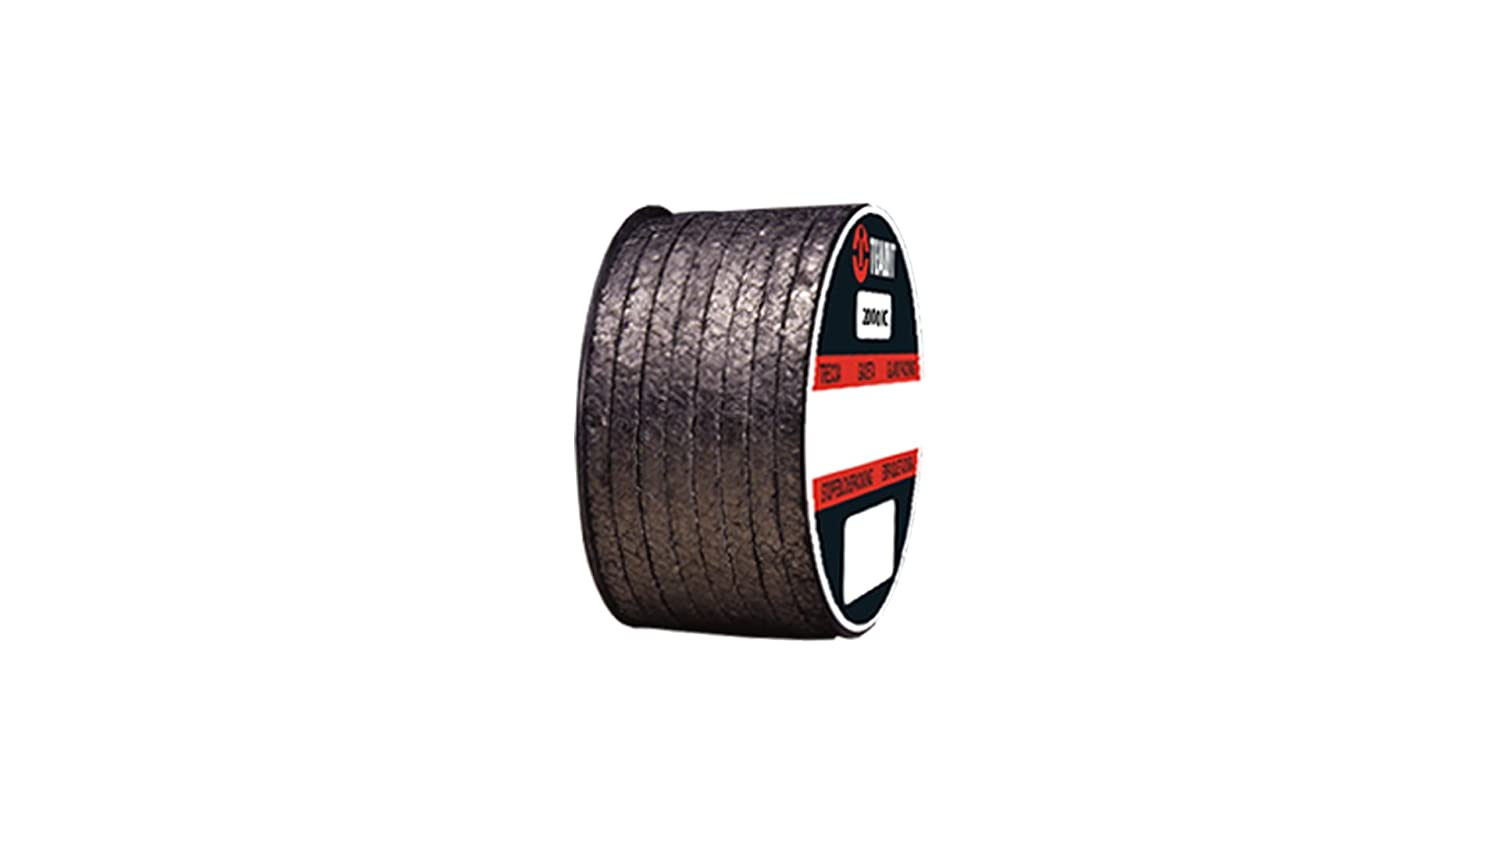 2000IC.375x1 2000IC Teadit Style Flexible Graphite Spool 3//8 CS x 1 lb Sterling Seal and Supply 3//8 CS x 1 lb STCC Reinforced Wire Spool